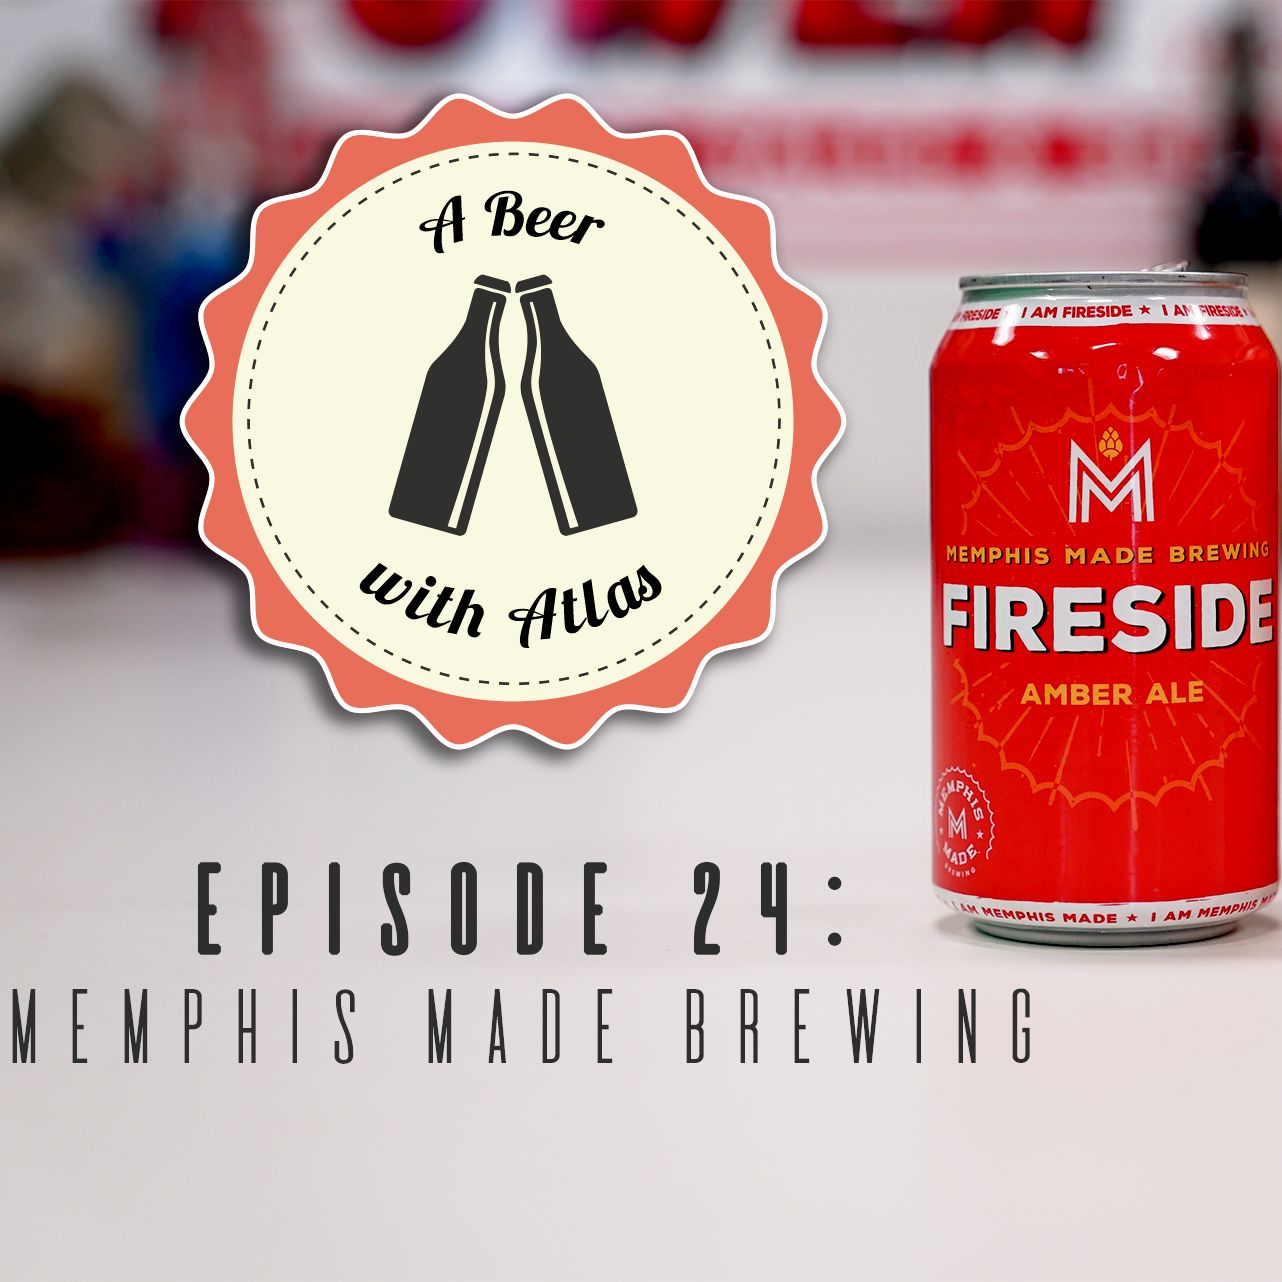 A Beer With Atlas #24 - Memphis Made Brewing